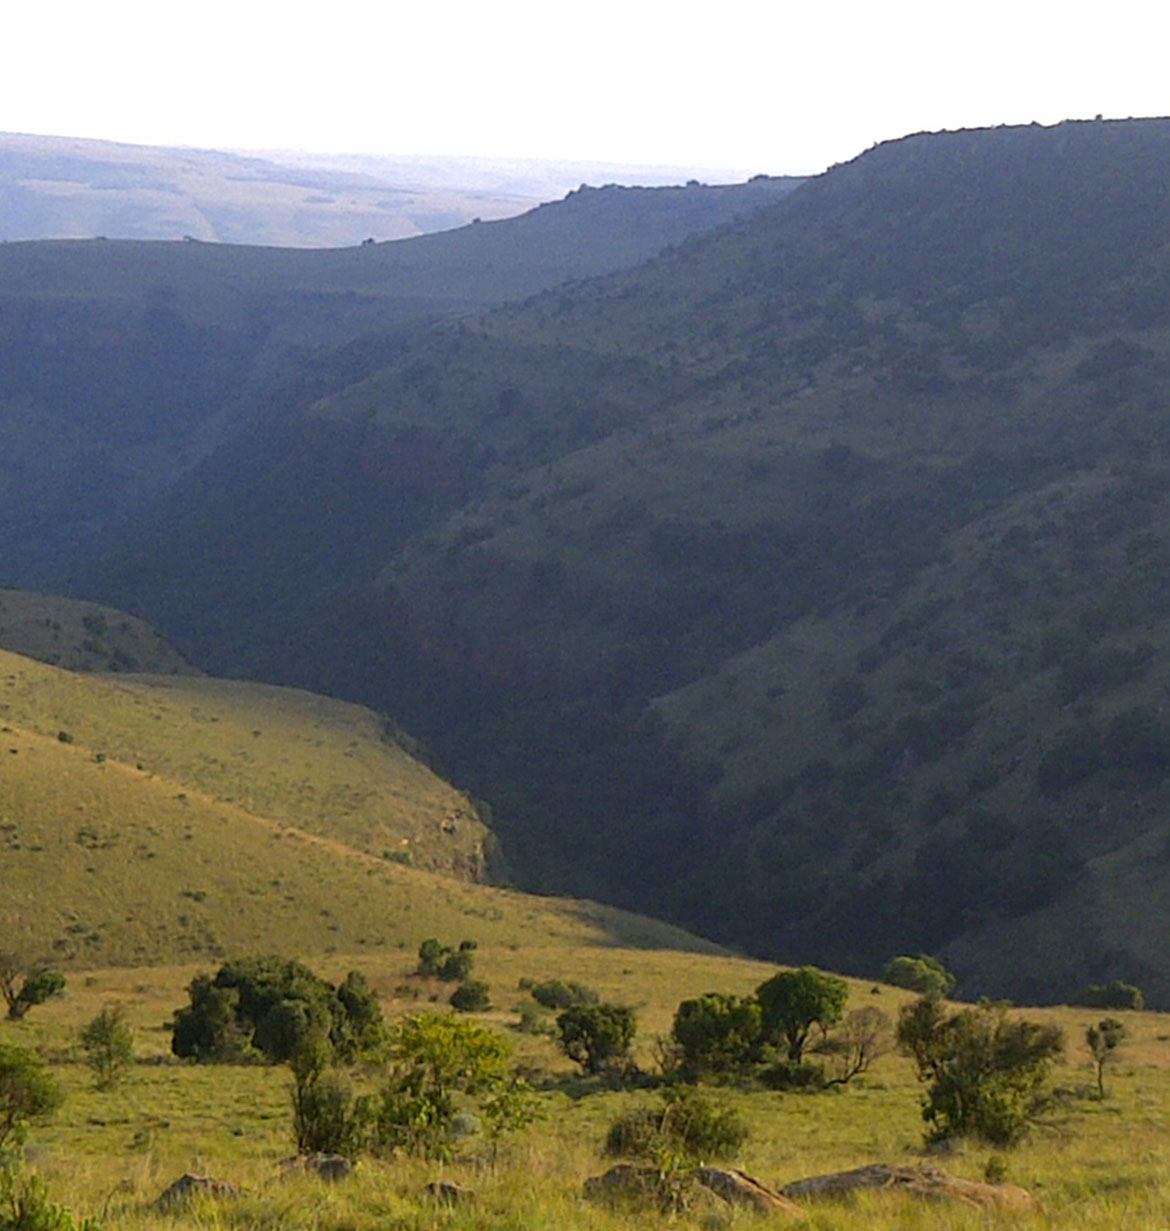 Popular hiking trails in Mpumalanga